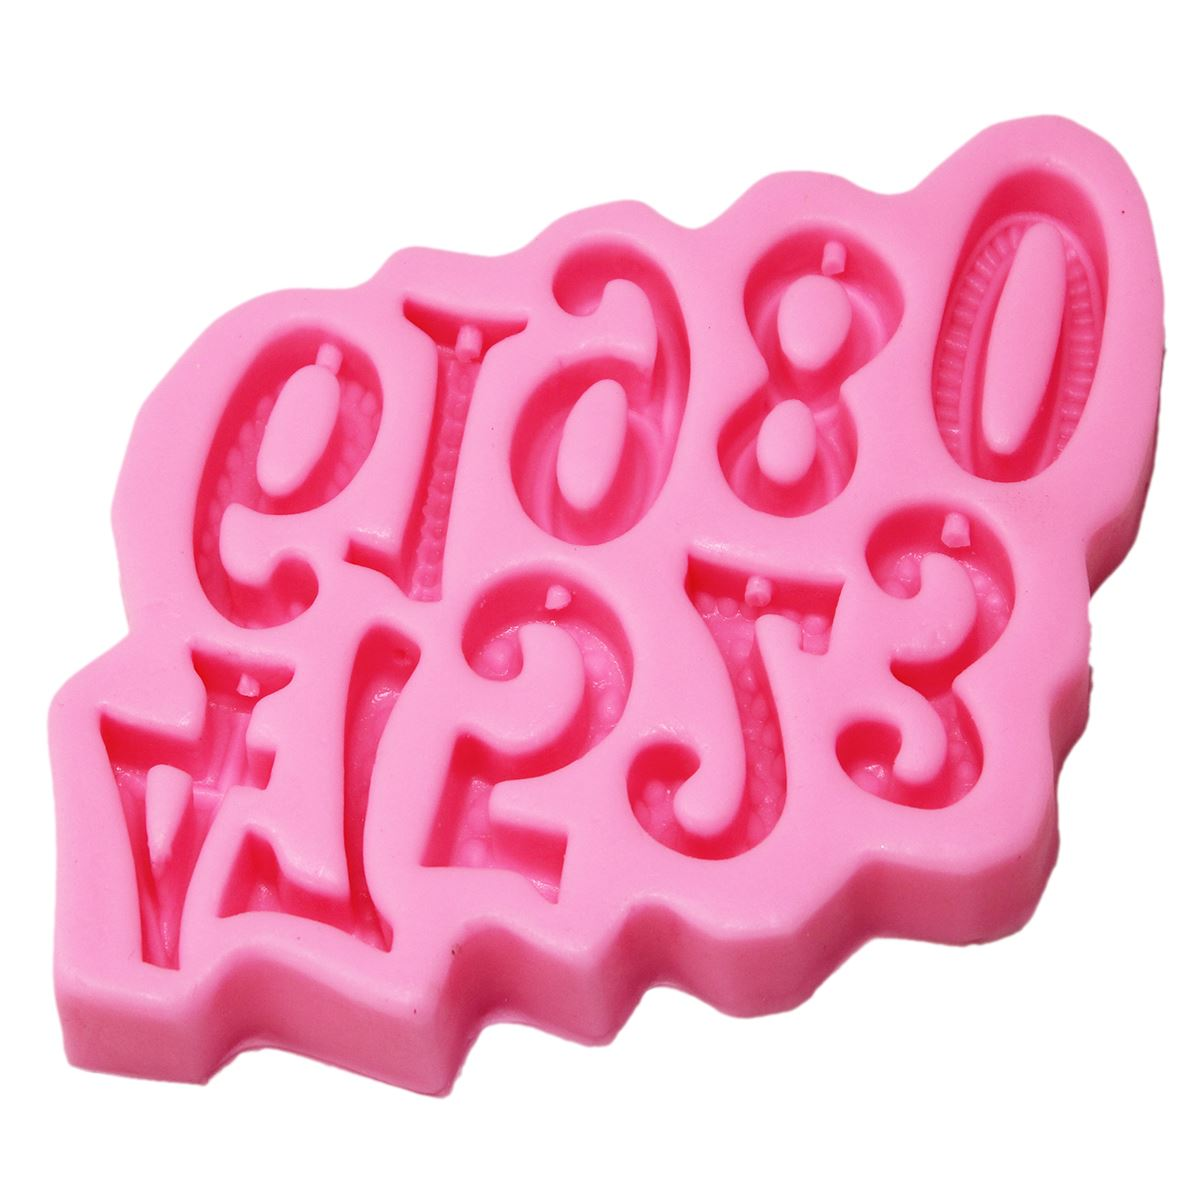 Resin Silicone Mould 1 to10 Number Design